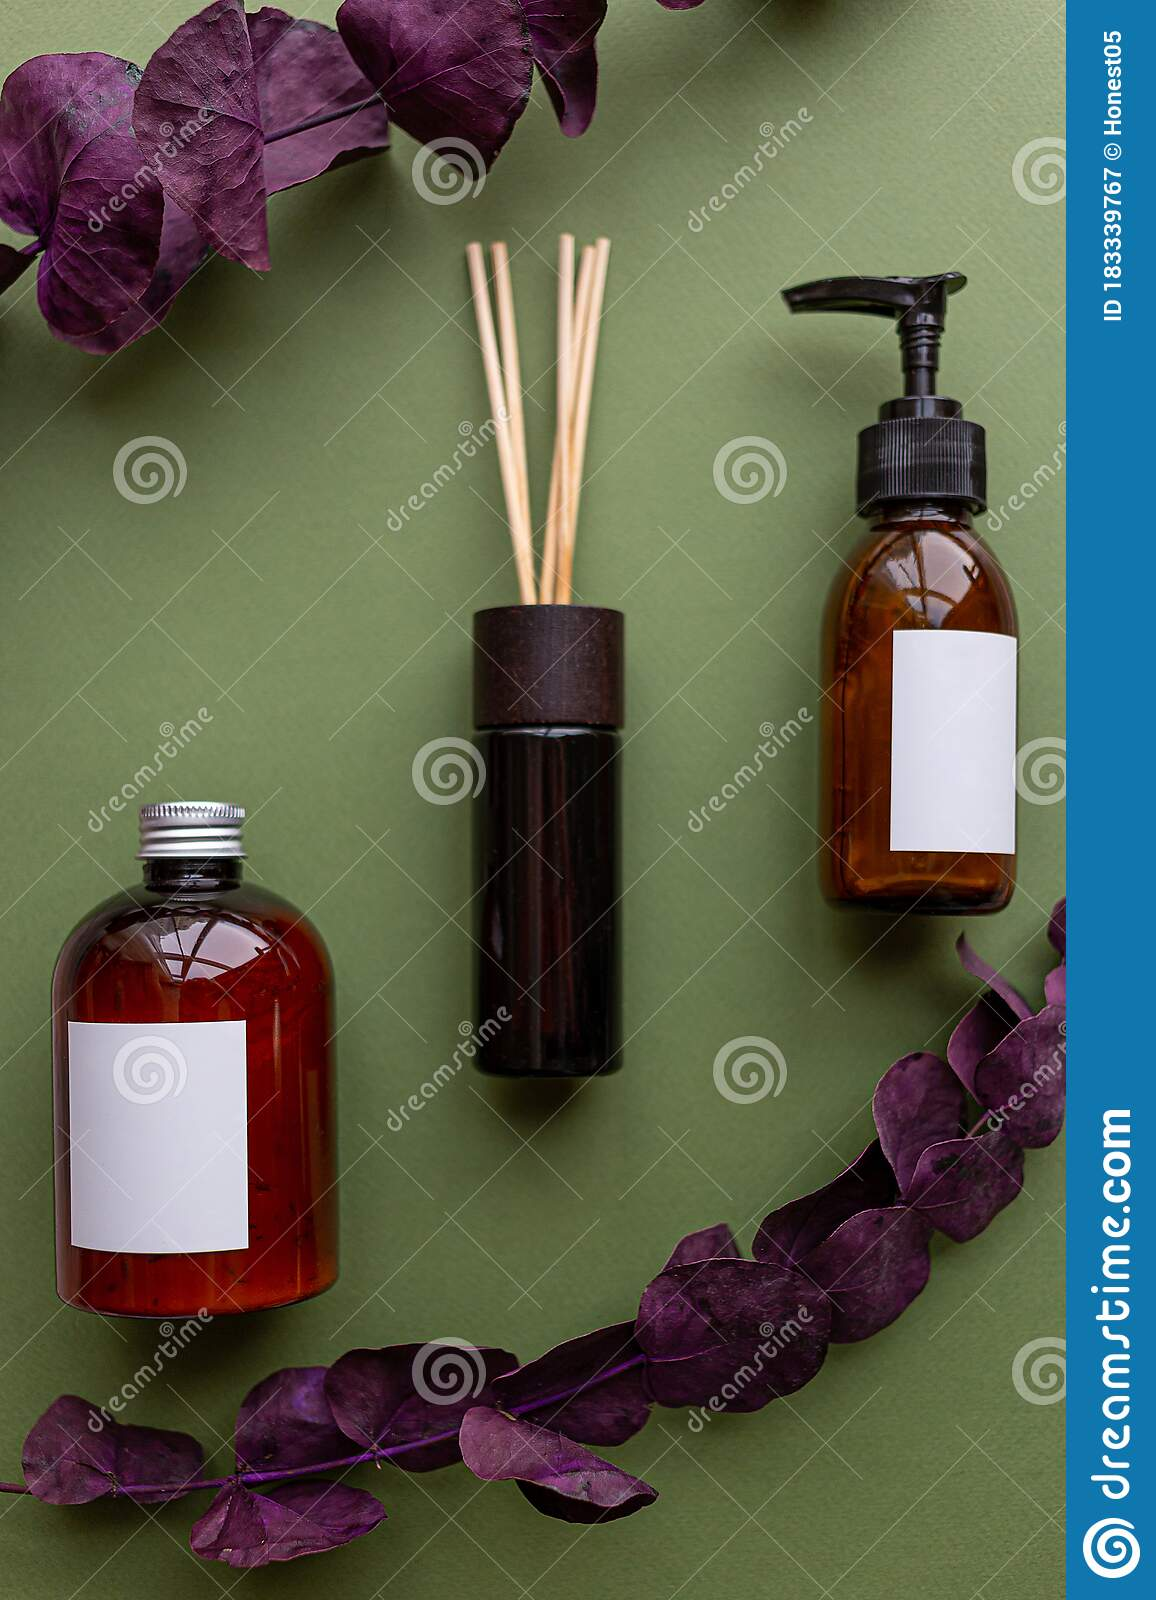 Natural Organic Spa Cosmetic Products Set With Dry Leaves Top View Herbal Skincare Beauty Products On Green Background Banner Stock Image Image Of Lotion Photo 183339767